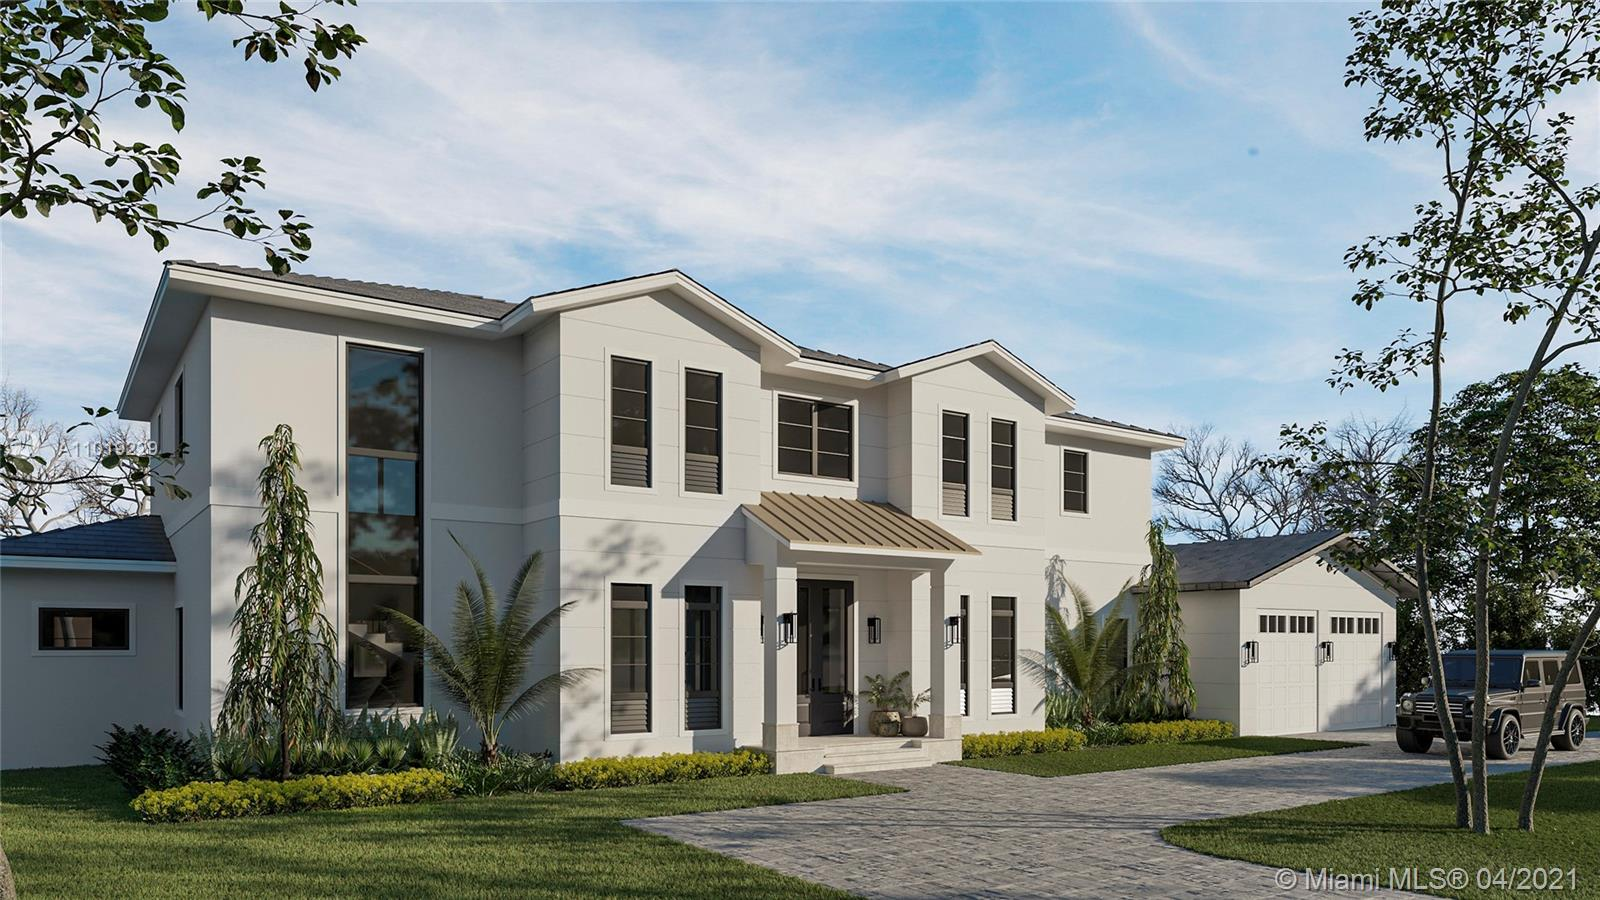 This new lakefront Hollub home under construction embodies the South Florida lifestyle, providing the perfect retreat- nestled on an idyllic Pinecrest street, offering a world of privacy, moments from top schools, recreation and Miami hot spots. Stunning modern farmhouse with legendary timeless design and quality, featuring 6 bedrooms and 7 baths, 6,986 SF, elevator, exceptional living and entertaining spaces with gorgeous views of the artful landscape, pool and lake beyond, custom kitchen with Wolf, Sub-Zero, plus 2 en suite bedrooms. The 2nd floor's luxurious owner's suite has a large terrace with panoramic views. A loft, elevator, plus 3 additional en suite bedrooms complete the 2d floor.